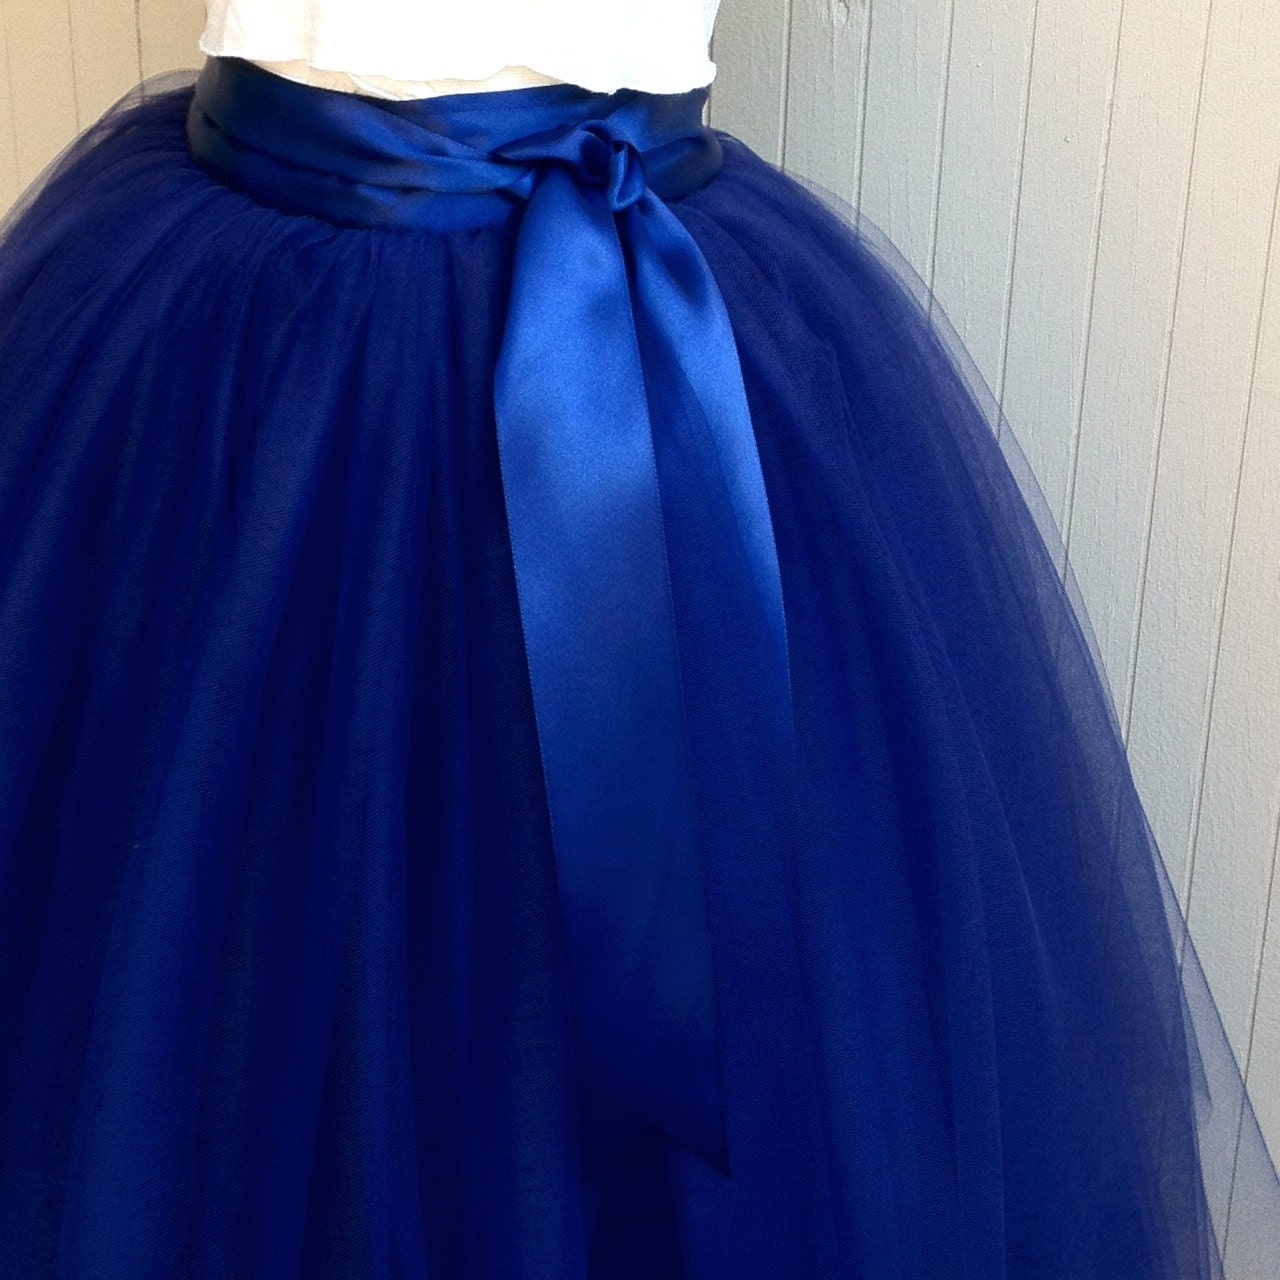 Fantastic Hard Tulle  1 Layer Of Satin  Cotton Lining  7 Layers In Total NOTE Comes With Belt, Final Sale Tipscan Be A Gift To Someone You Love Friendship Gift Christmas Gift Birthday Gift Gift Bridesmaids Jewelry Sets Prom Wedding Party And